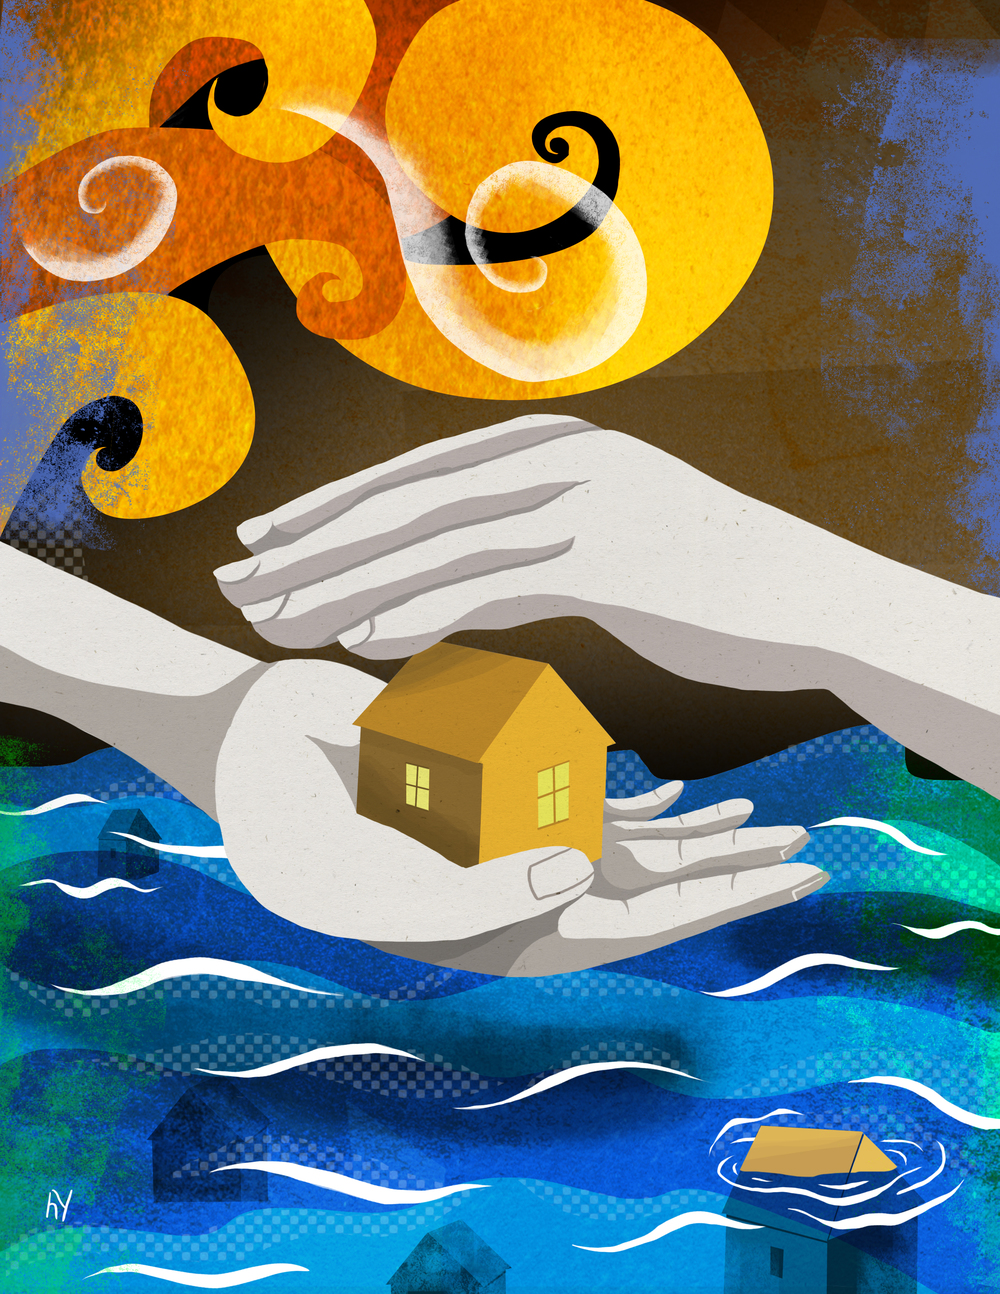 Flood insurance, for Common Ground Magazine